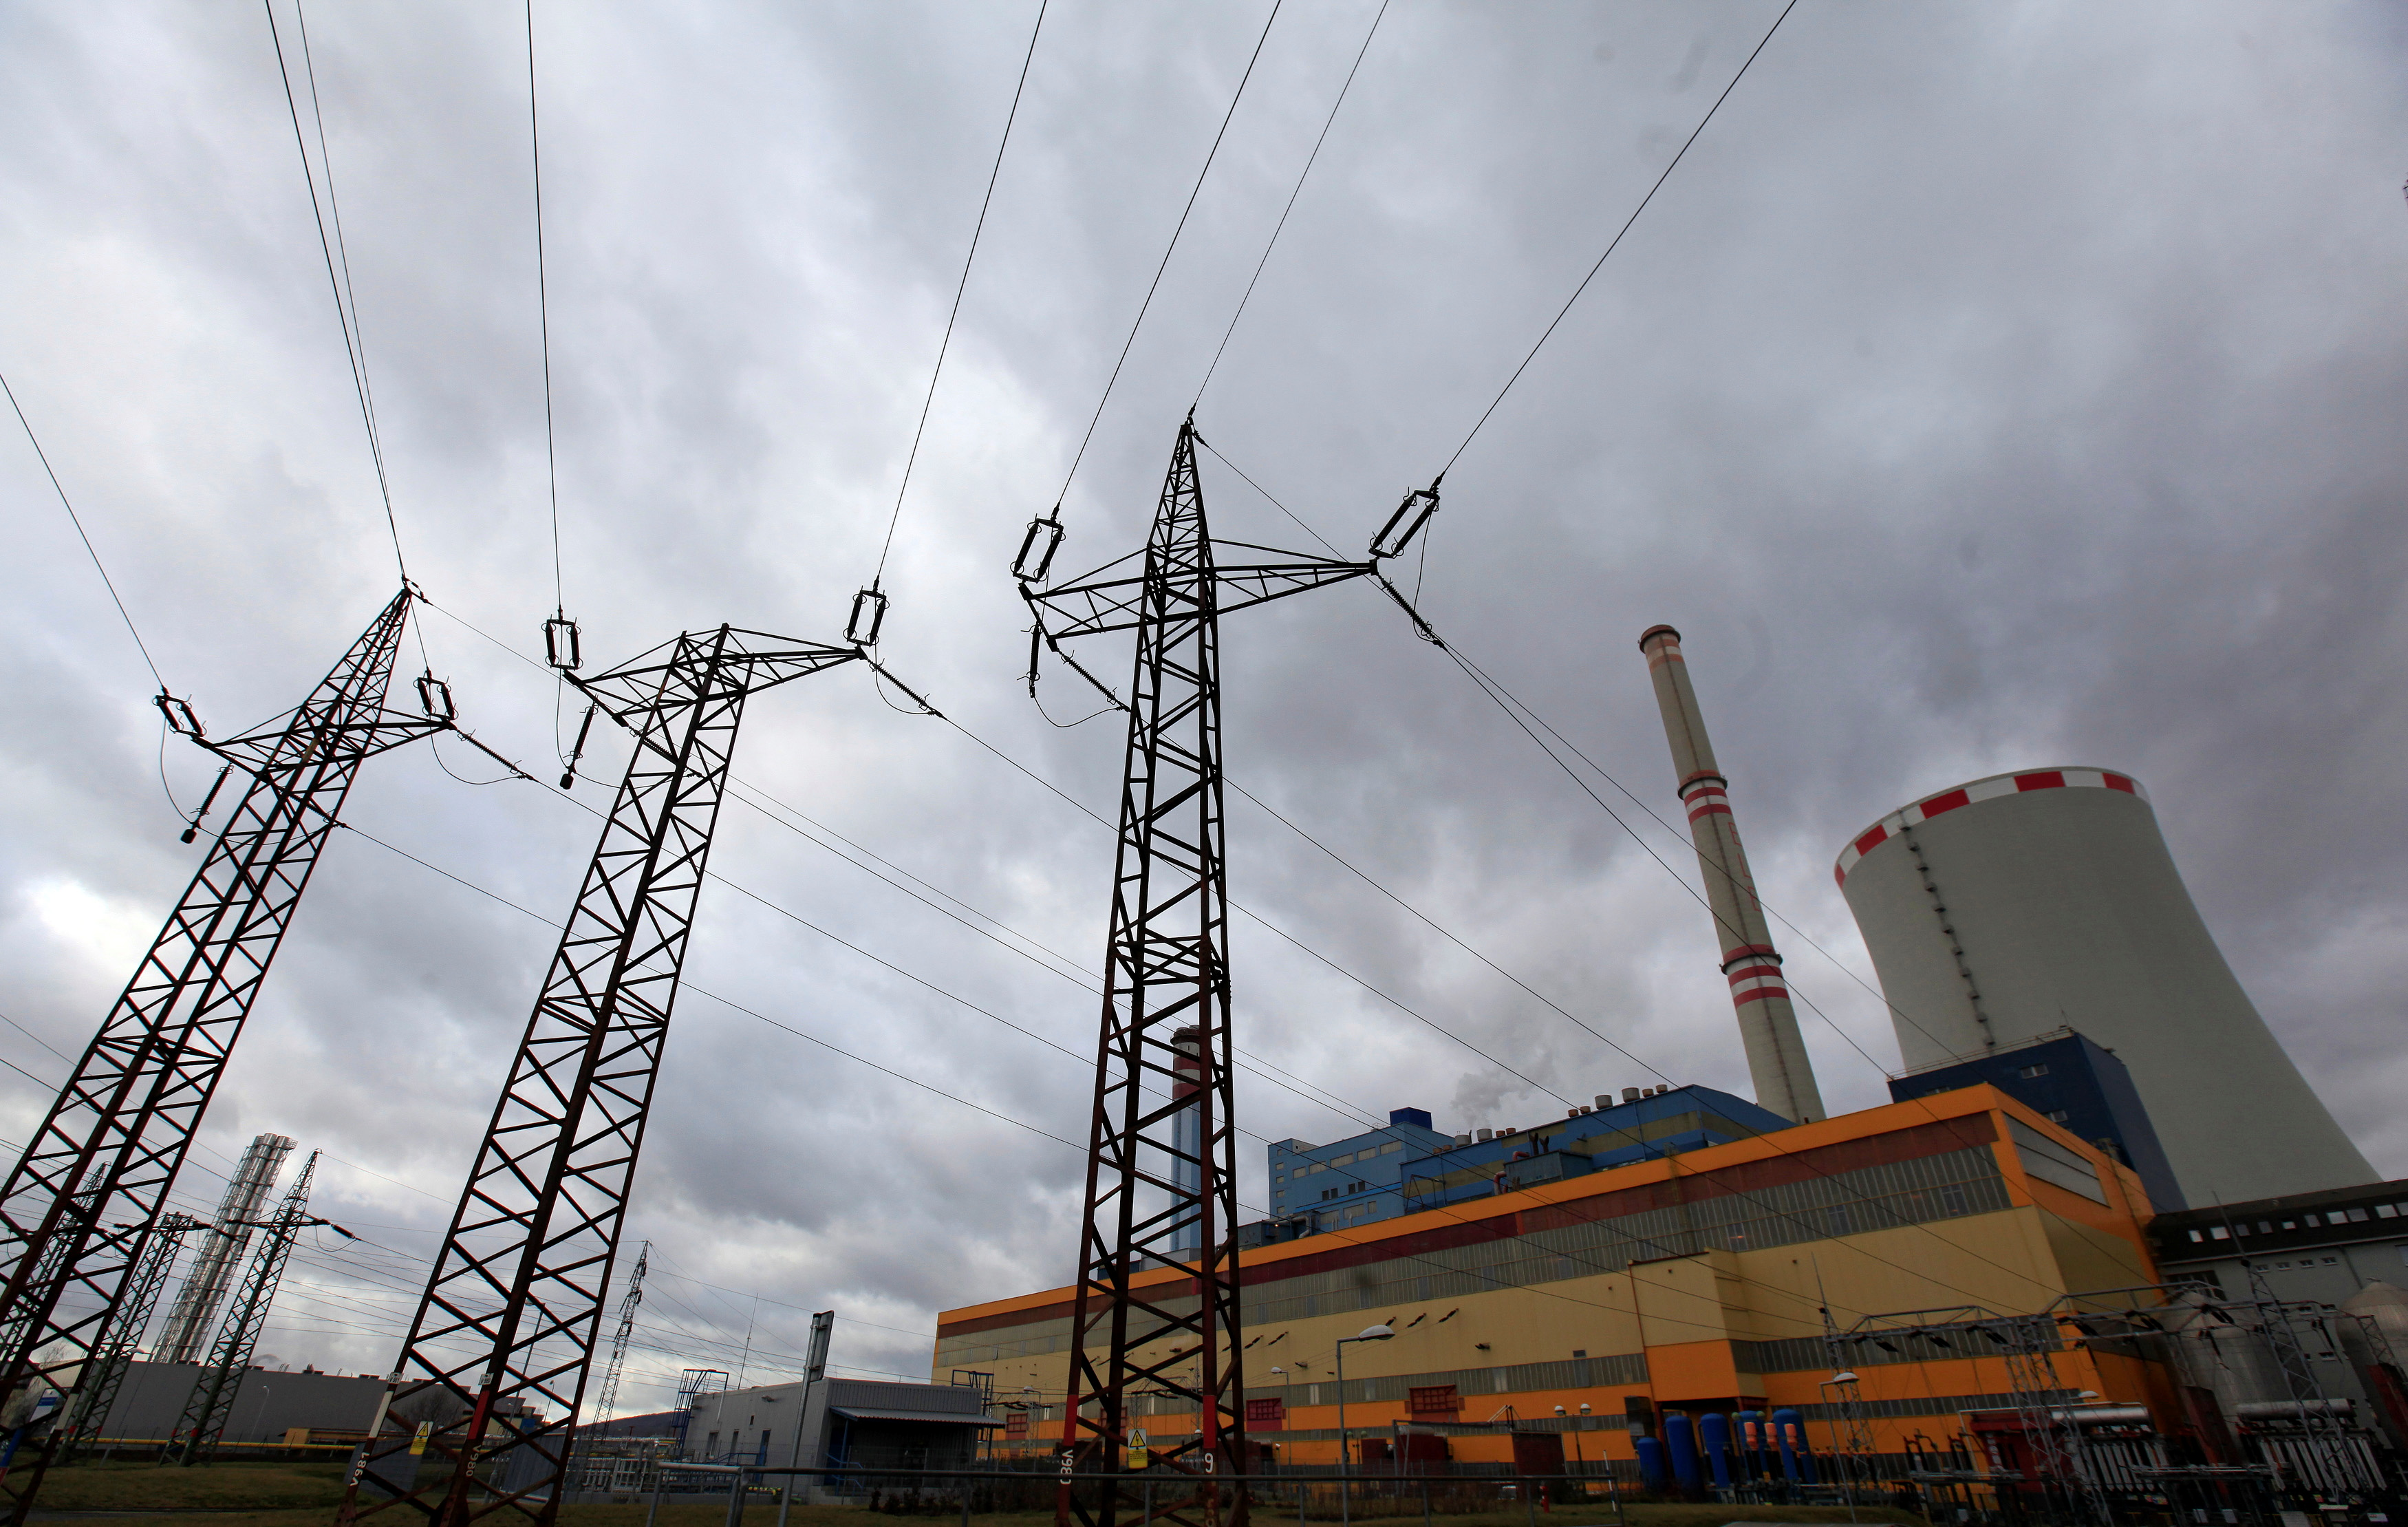 Electricity pylons carry power from CEZ's Ledvice coal-fired power plant near the village of Ledvice, Czech Republic, February 9, 2016.   REUTERS/David W Cerny